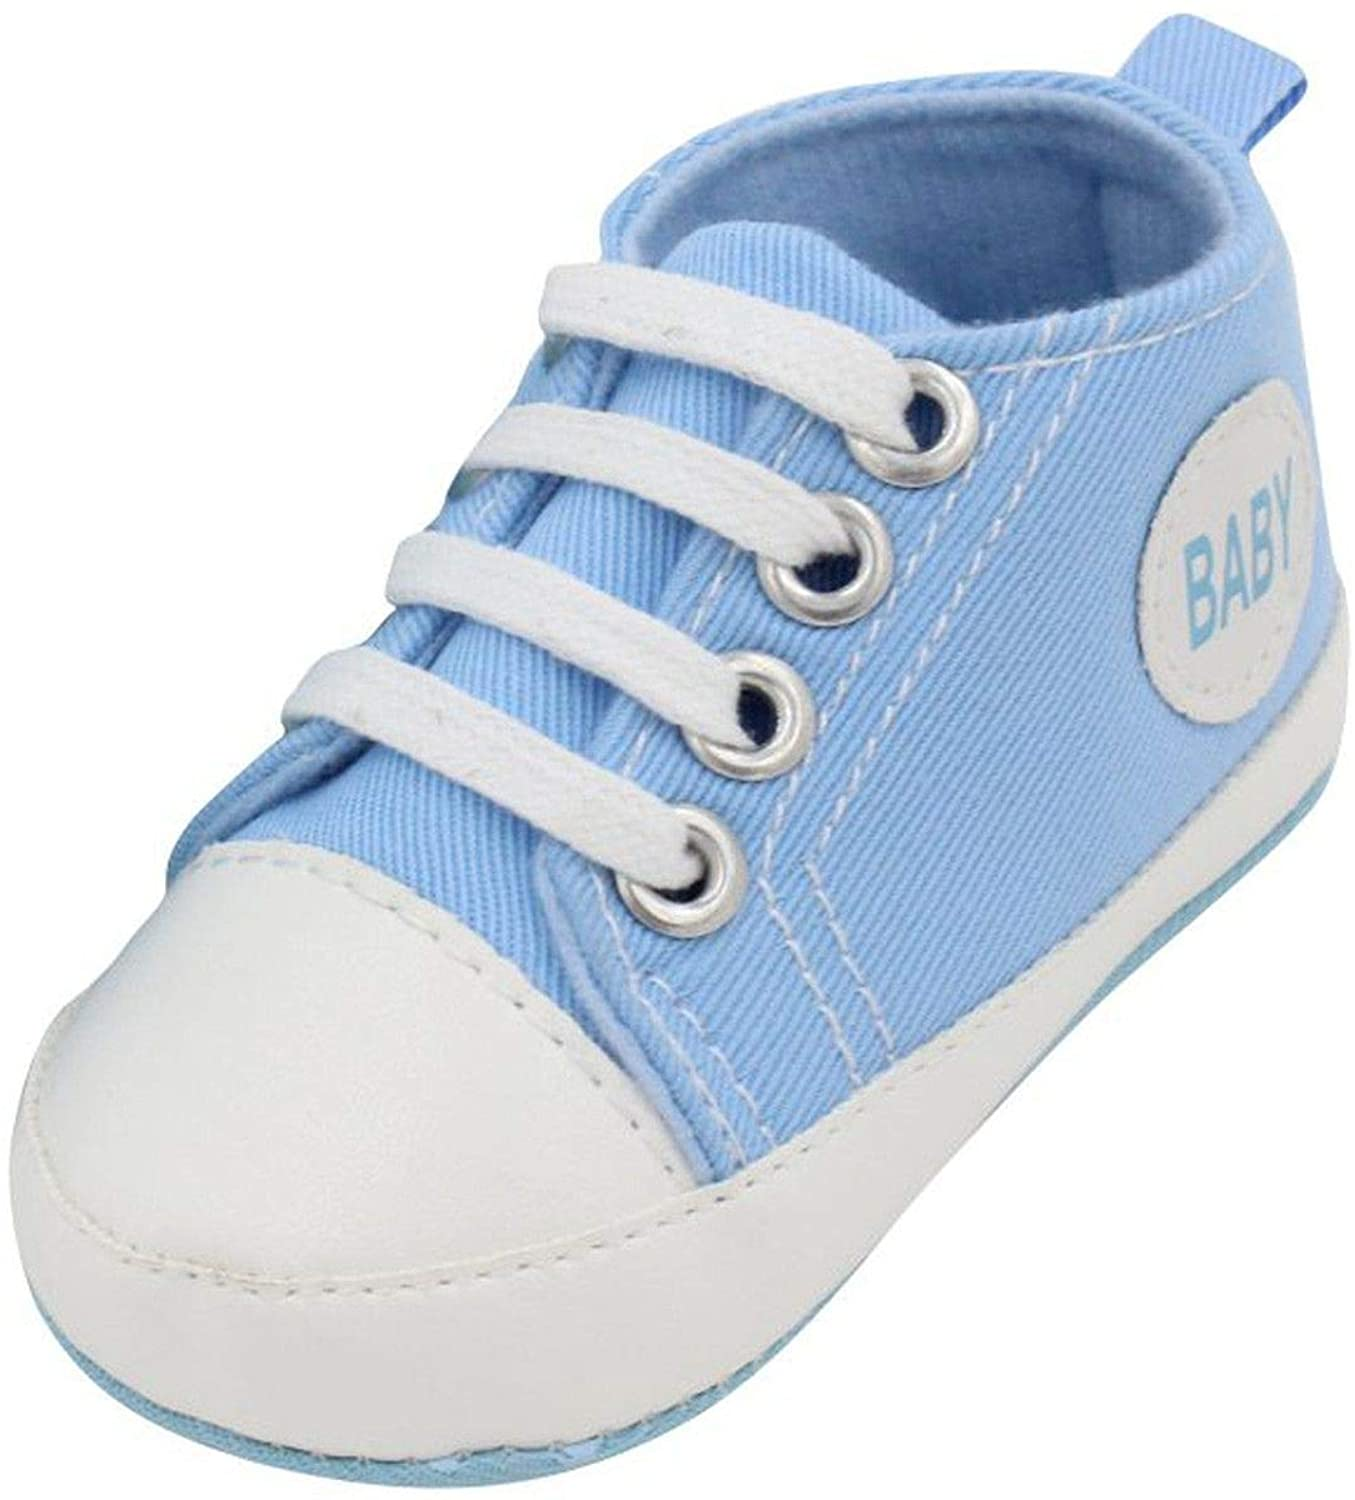 Beautymade Baby Boys Girls Shoes Kids Children Sneakers Infantil Soft Bottom First Walkers